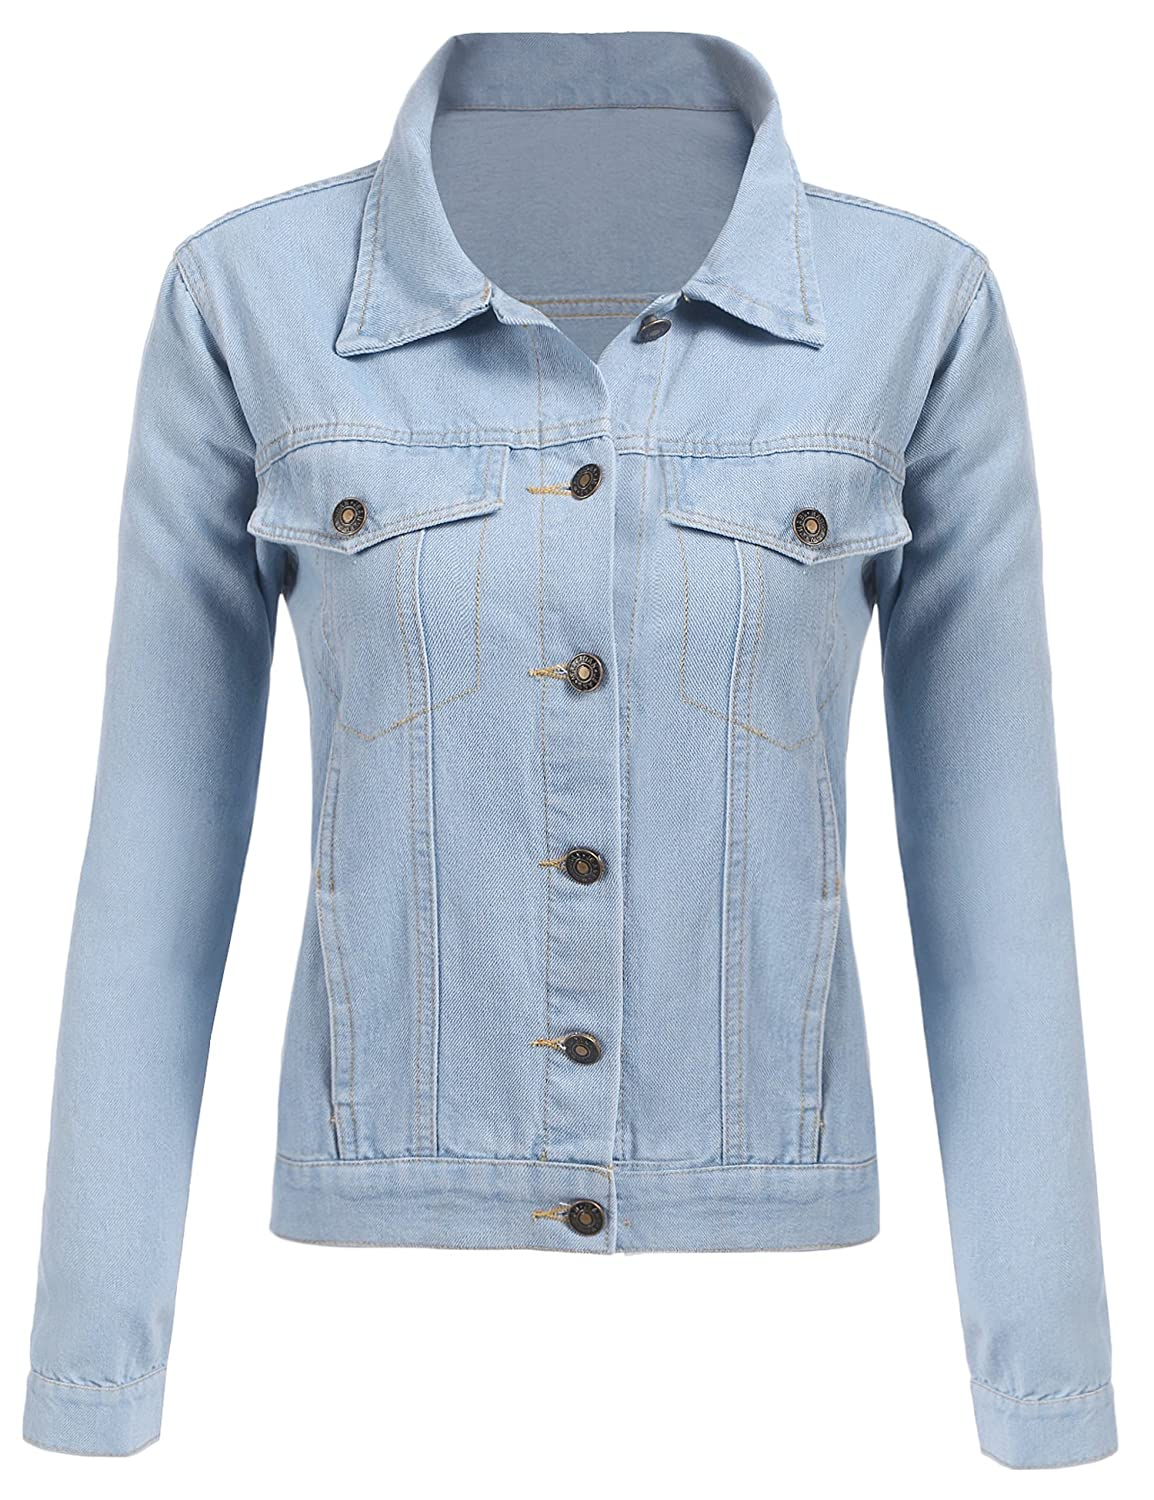 d0e554731d2 Top5  SE MIU Women s Long Sleeve Turn-Down Collar Trucker Button Up Denim  Jacket